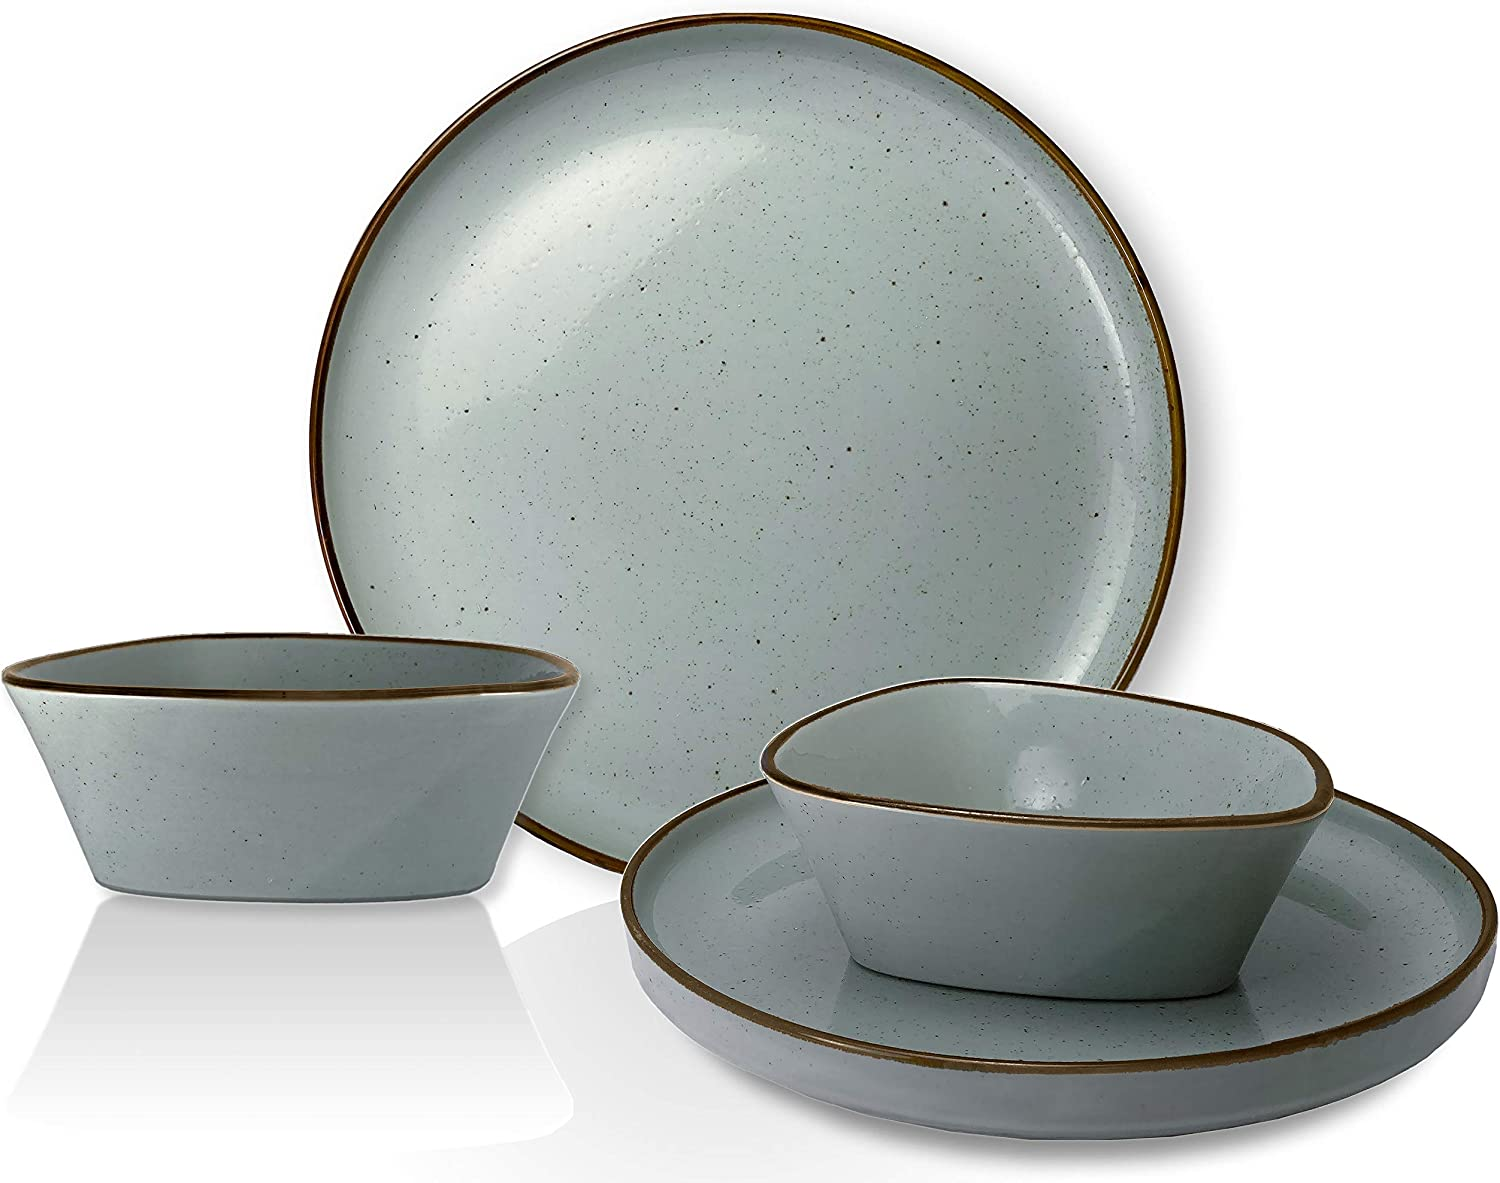 CK Home Rustic Farm, Modern Tray Plates and Bowls Dinnerware Set- 4 Essential Pieces. Porcelain Grey